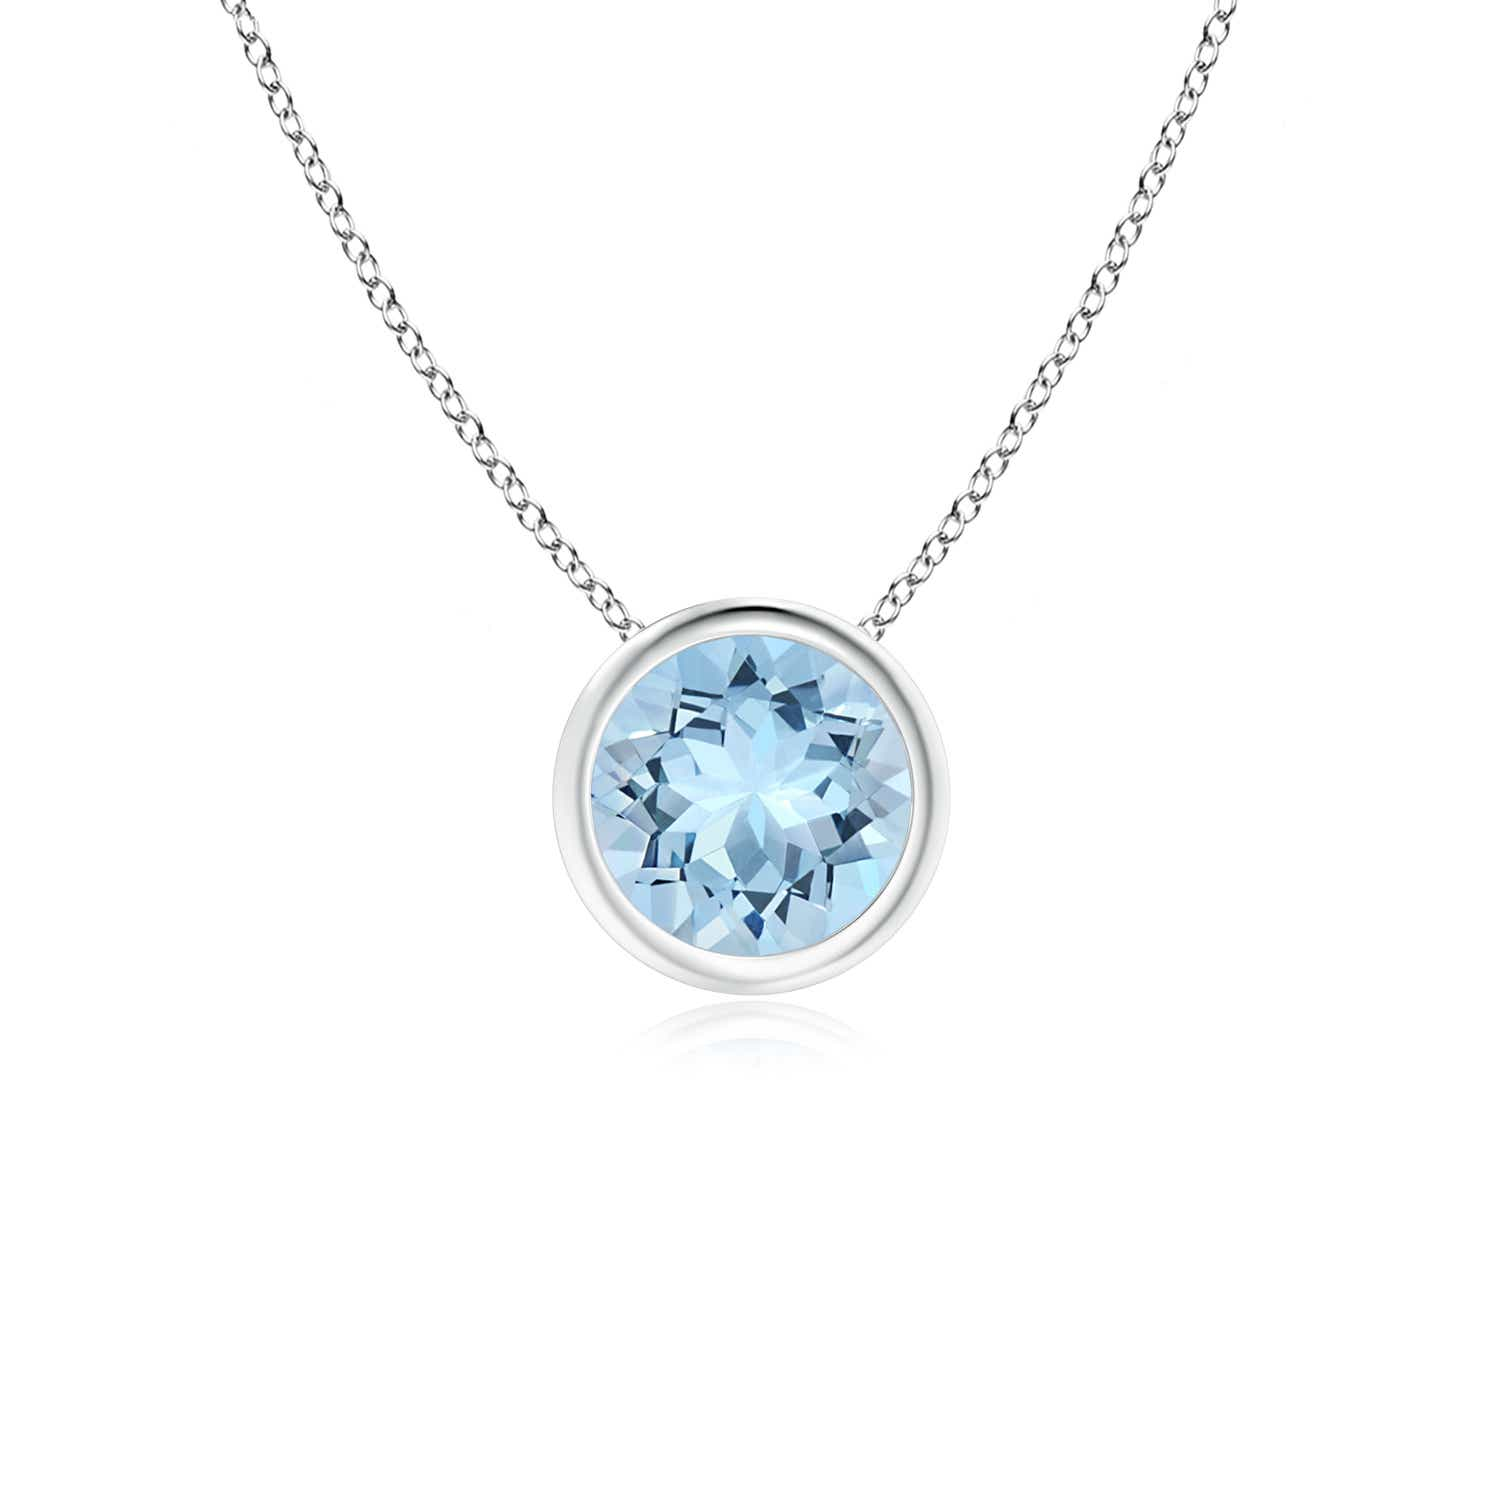 pendant aquamarine zoom necklaces march necklace birthstone sterling silver loading hiho cz